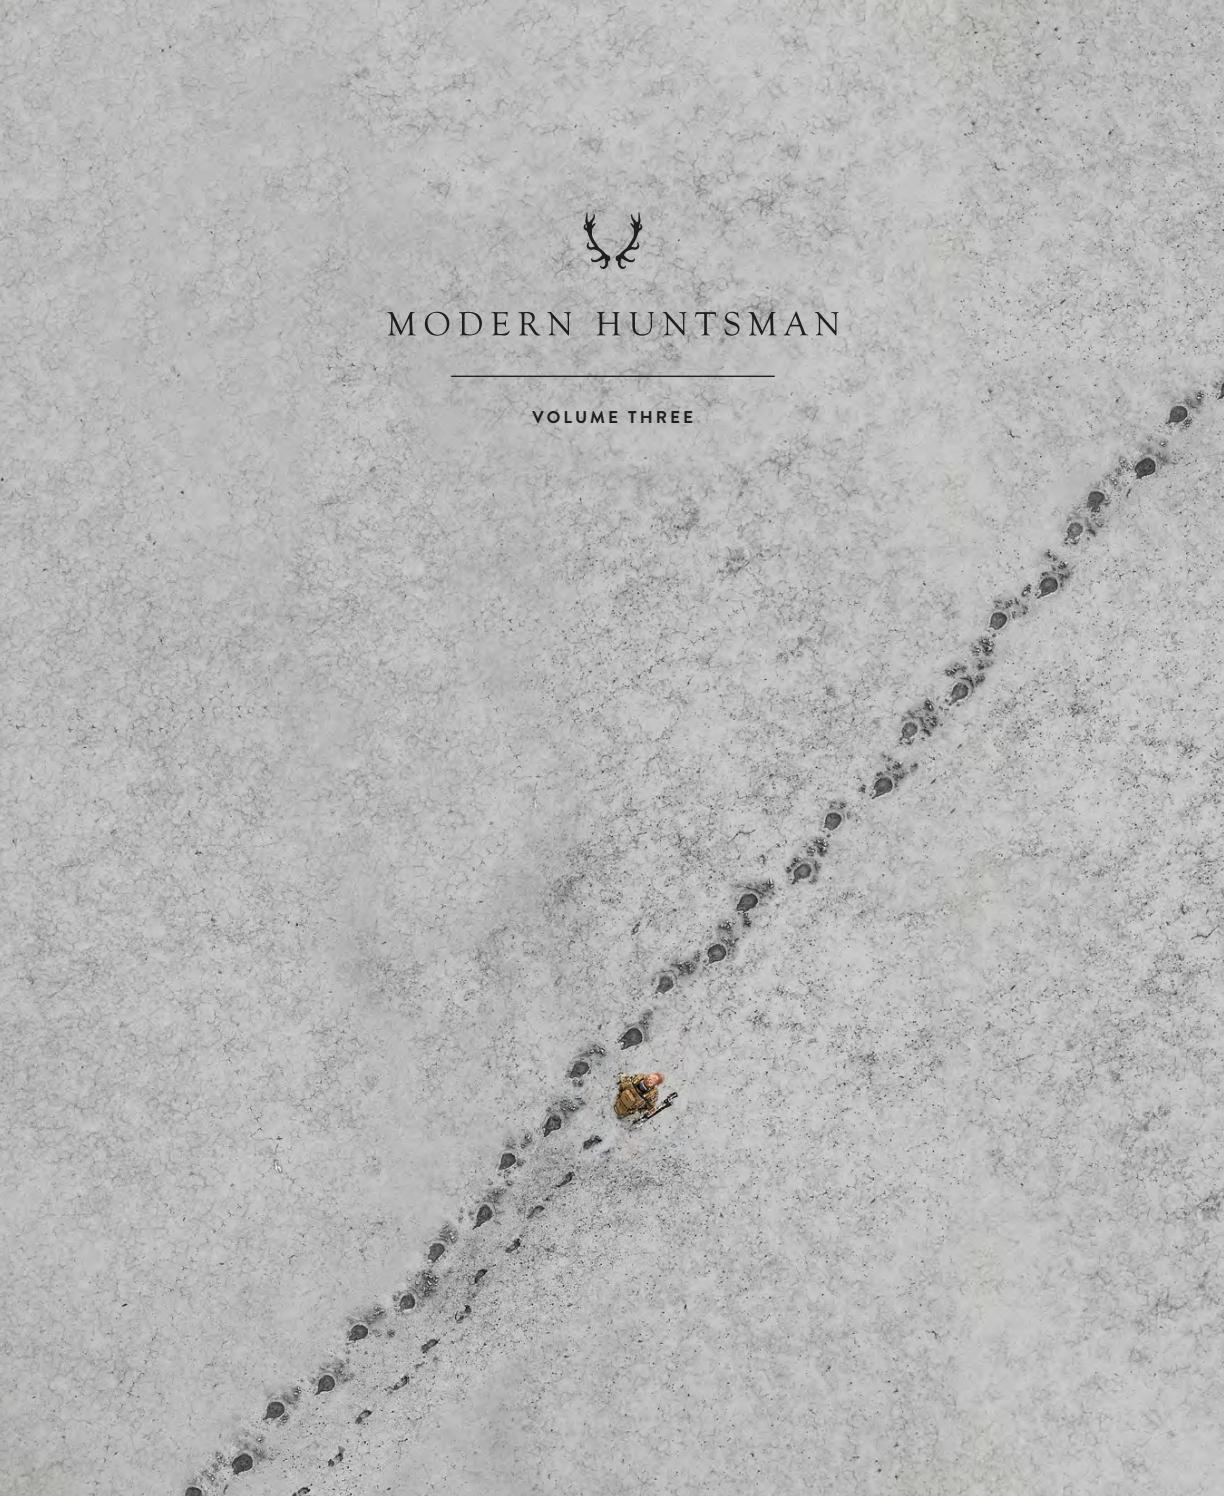 Modern Huntsman Volume Three: Wildlife Management by Modern